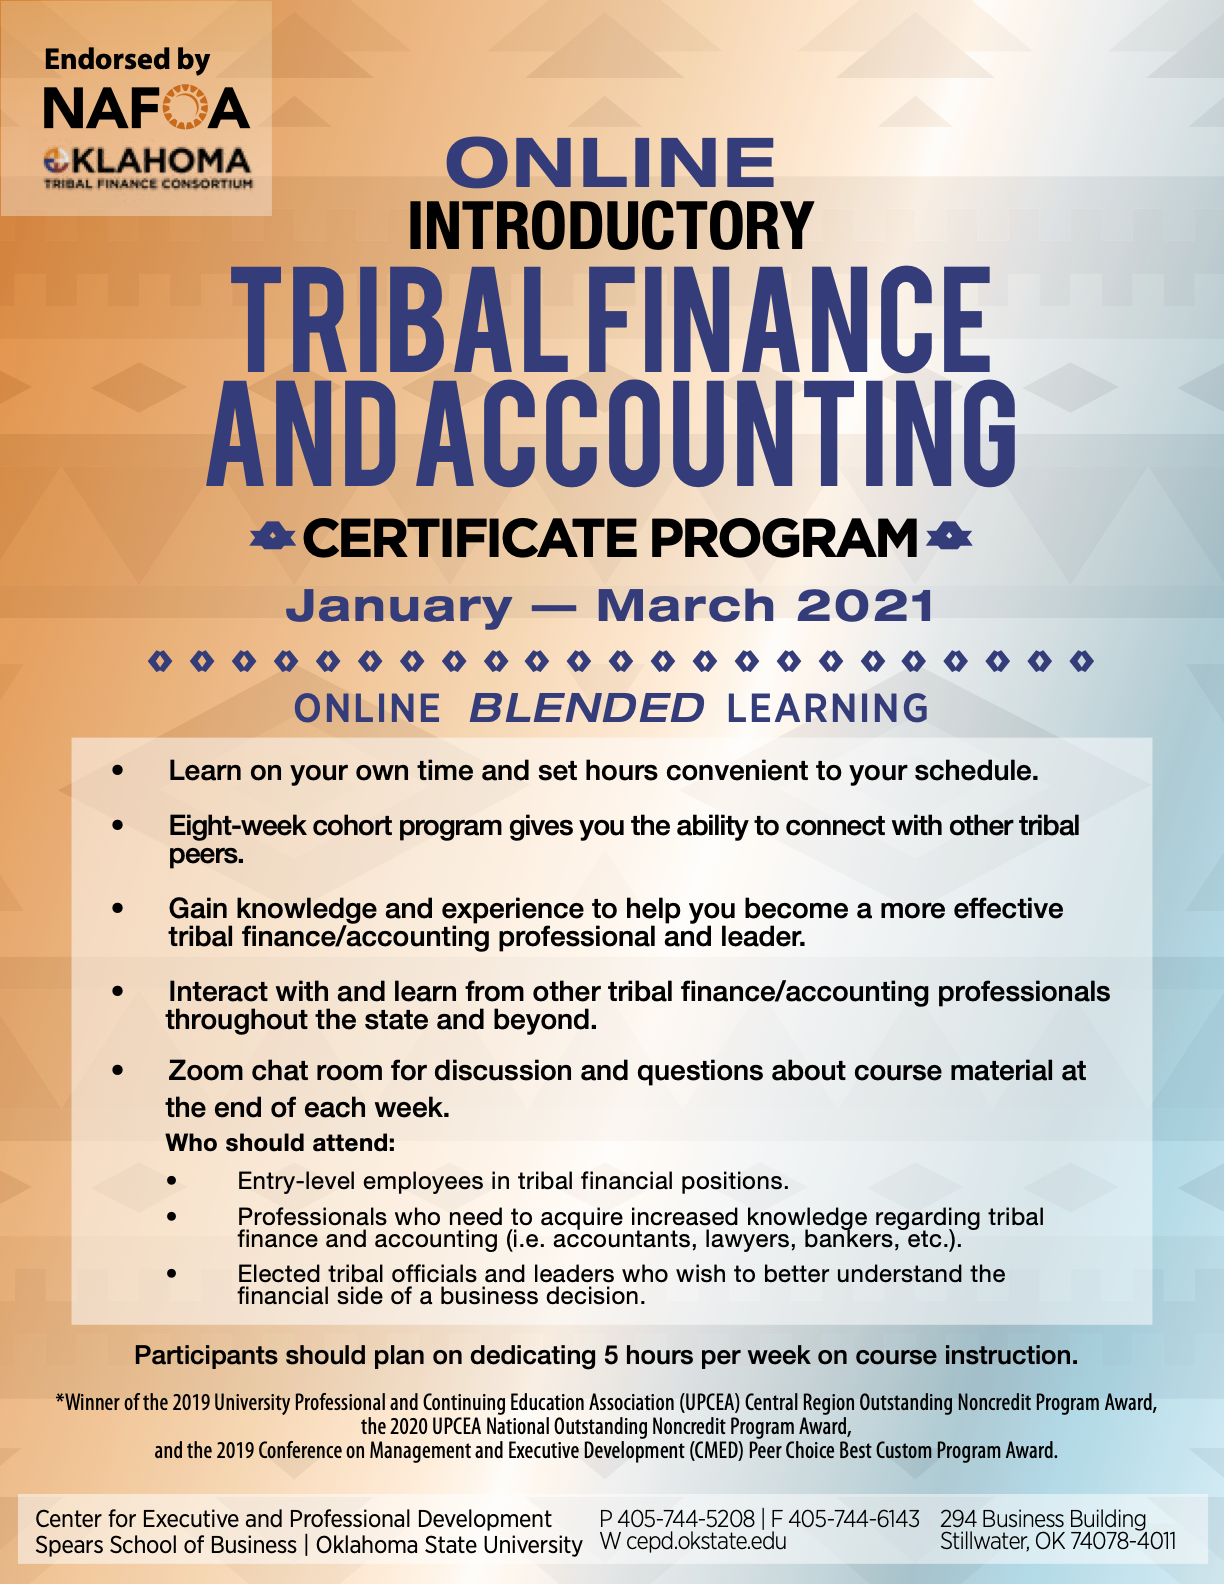 Online Introductory Tribal Finance and Accounting Certificate Program Agenda - Click for More